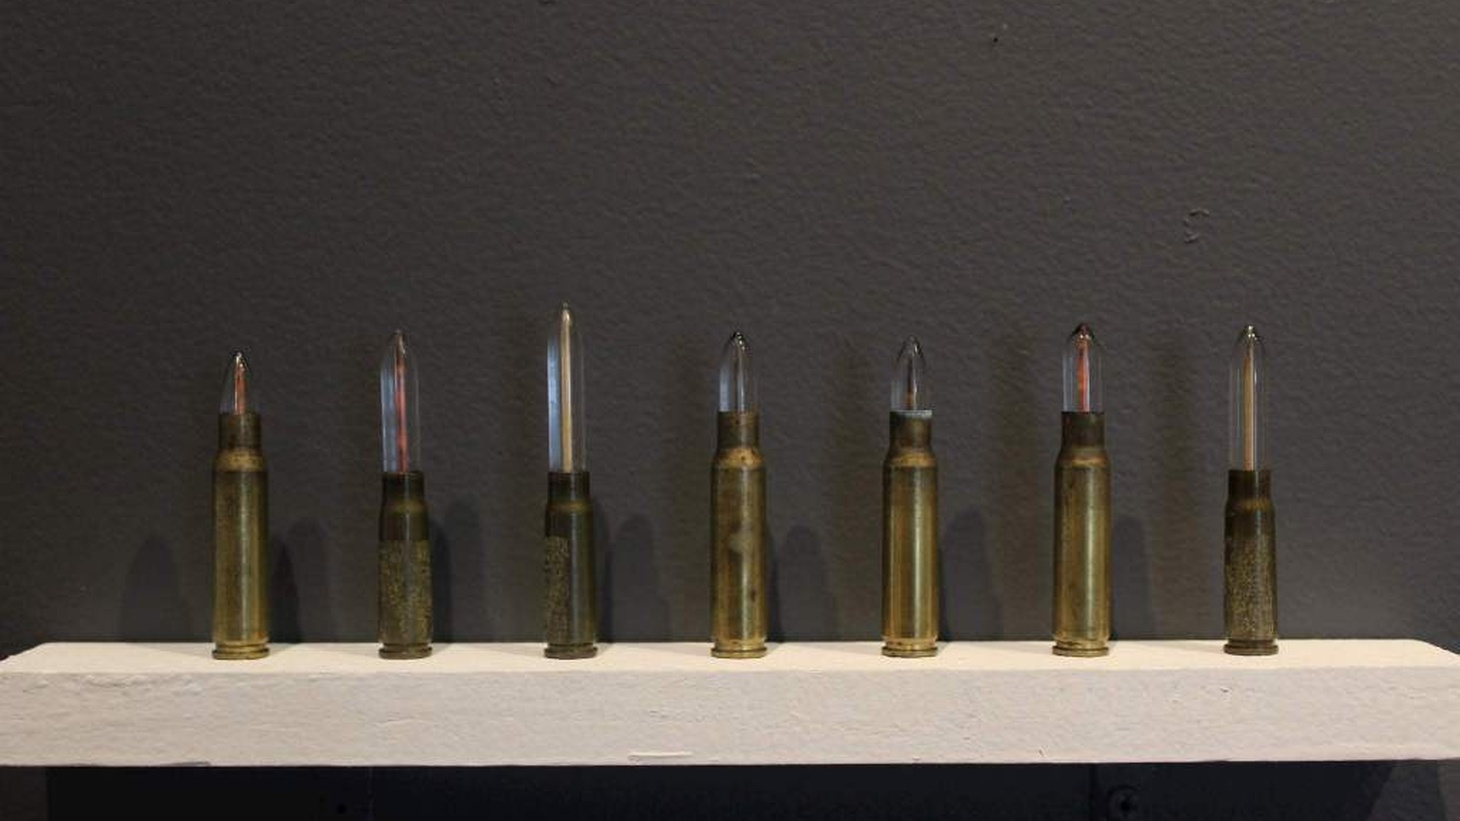 """Bernice Akamine, Papahonumoku, 2018 Spent bullet casings, glass and ʻalaea, Hawaiian earth pigments. Niihau: 1.1cm x 6.8cm x 1.1cm  """"While the artwork speaks of the desecration of sacred, burial and historic Hawaiian sites and of Native Hawaiian rights, on a larger scale it is a look at the pollution of land and sea across the US."""""""